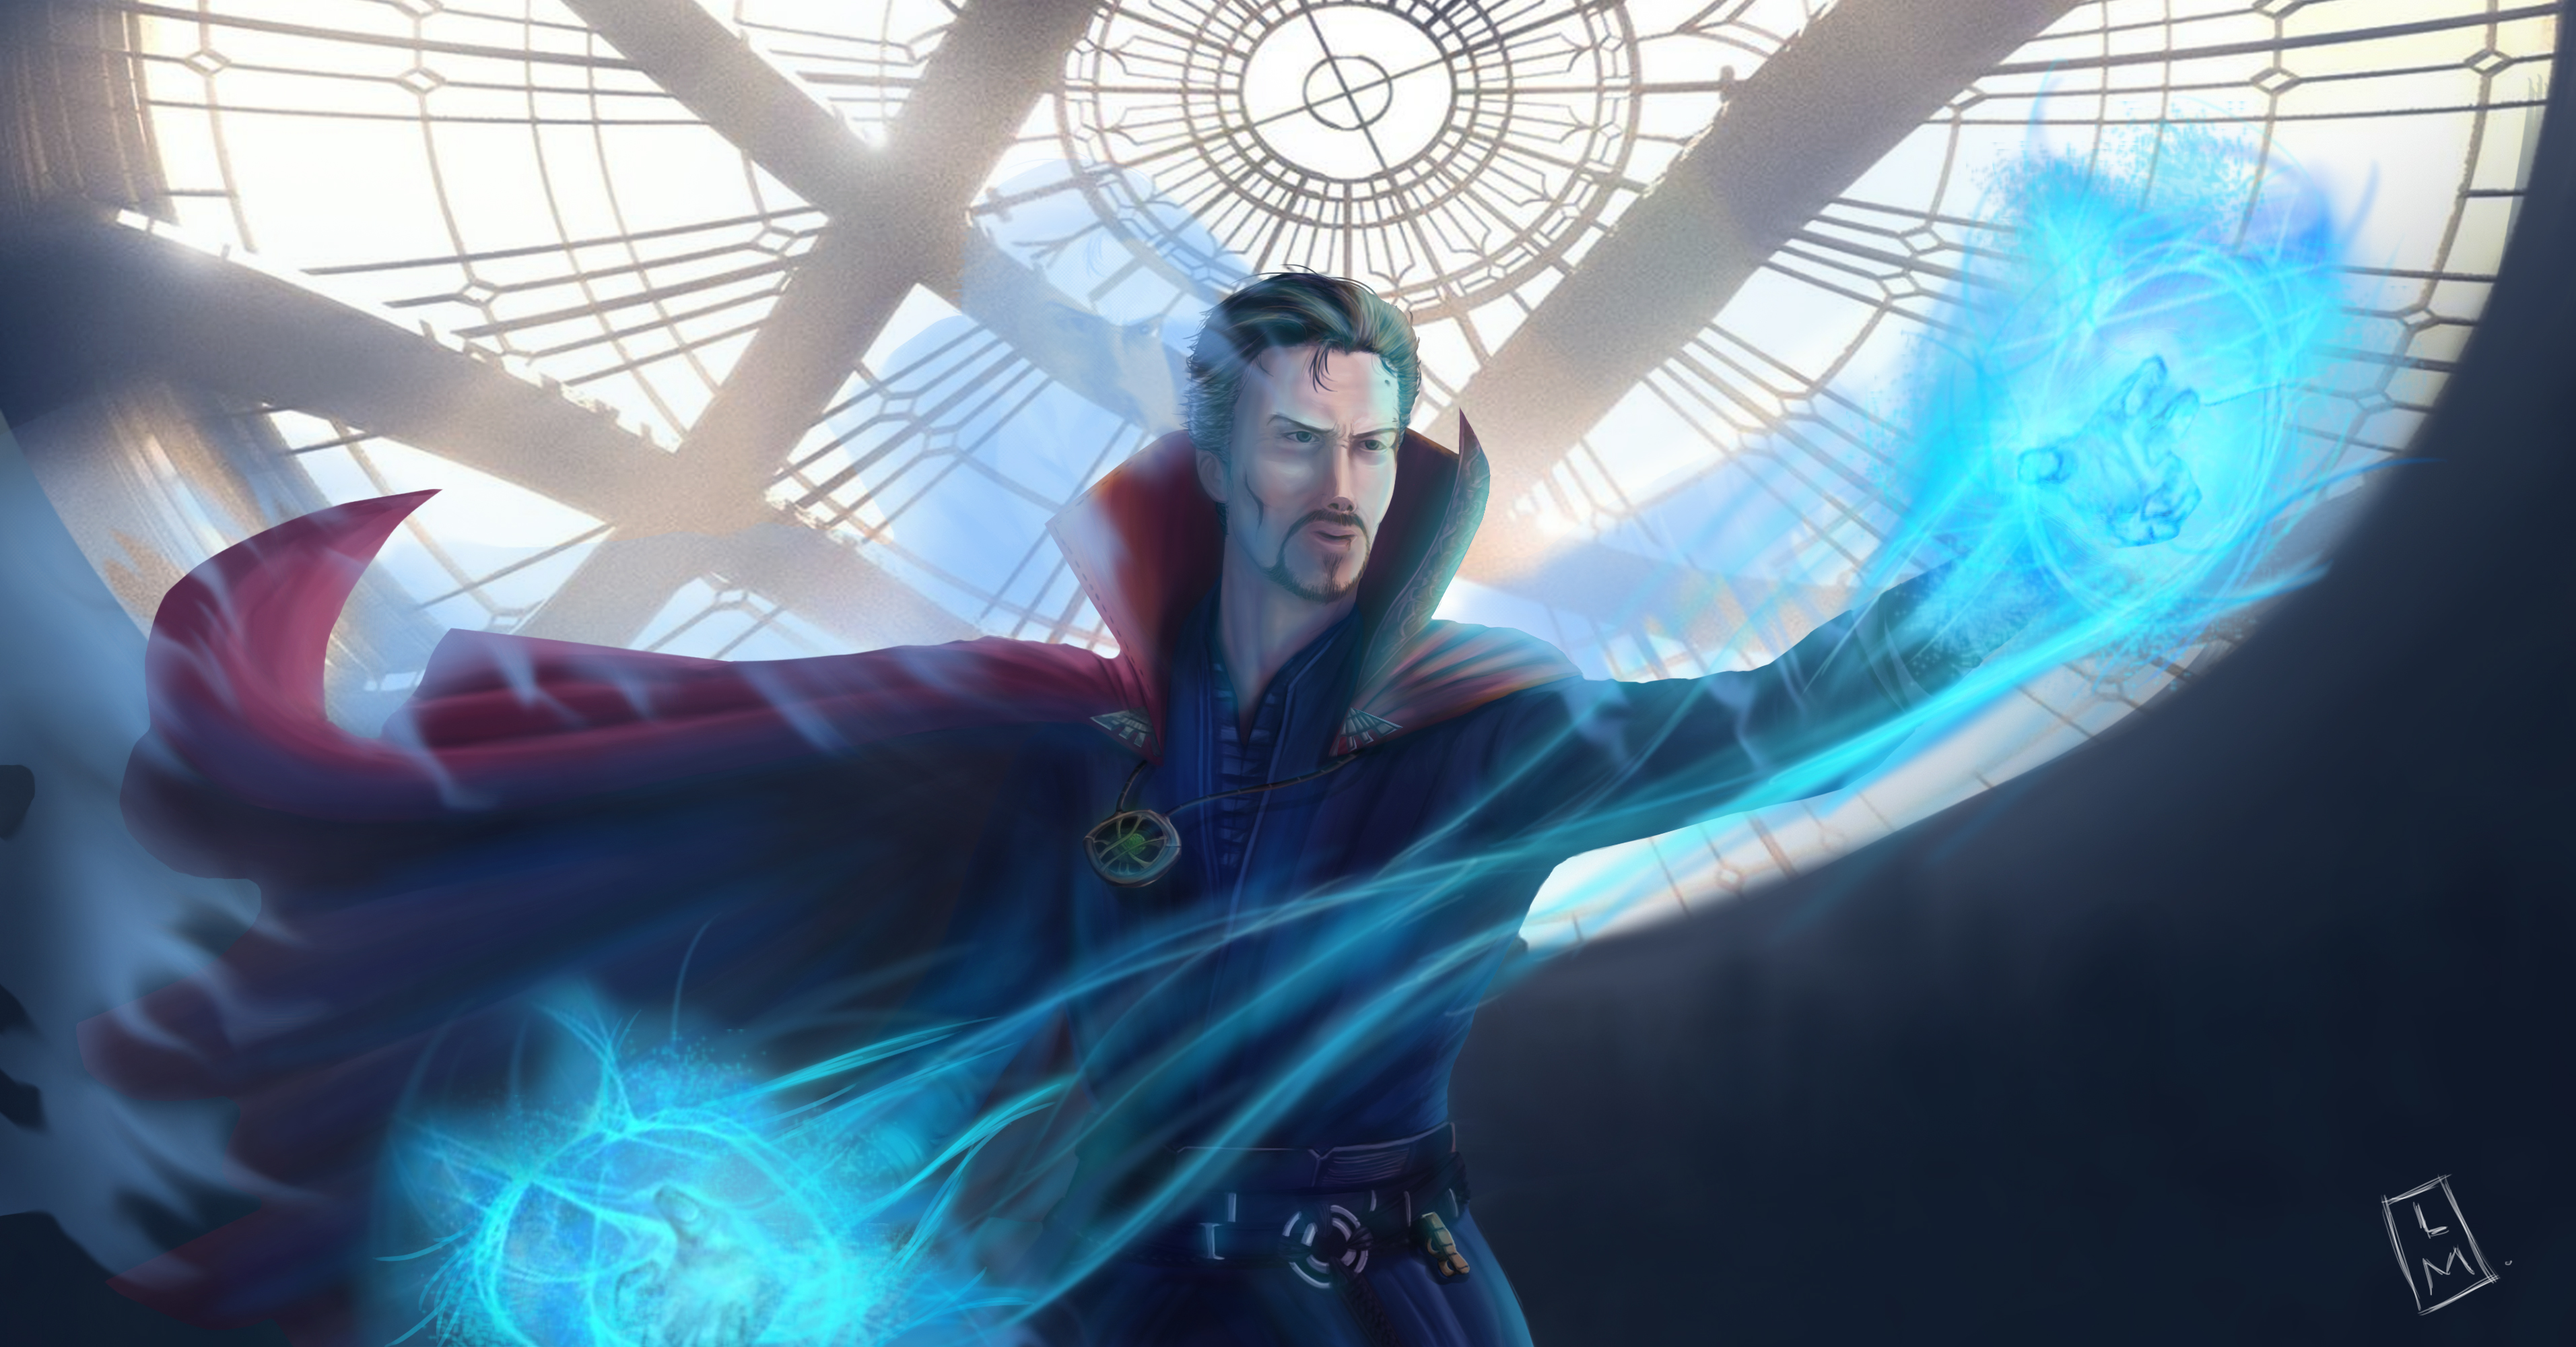 doctor strange 4k art 1547506722 - Doctor Strange 4K Art - superheroes wallpapers, illustration wallpapers, doctor strange wallpapers, digital art wallpapers, behance wallpapers, artwork wallpapers, artist wallpapers, 4k-wallpapers